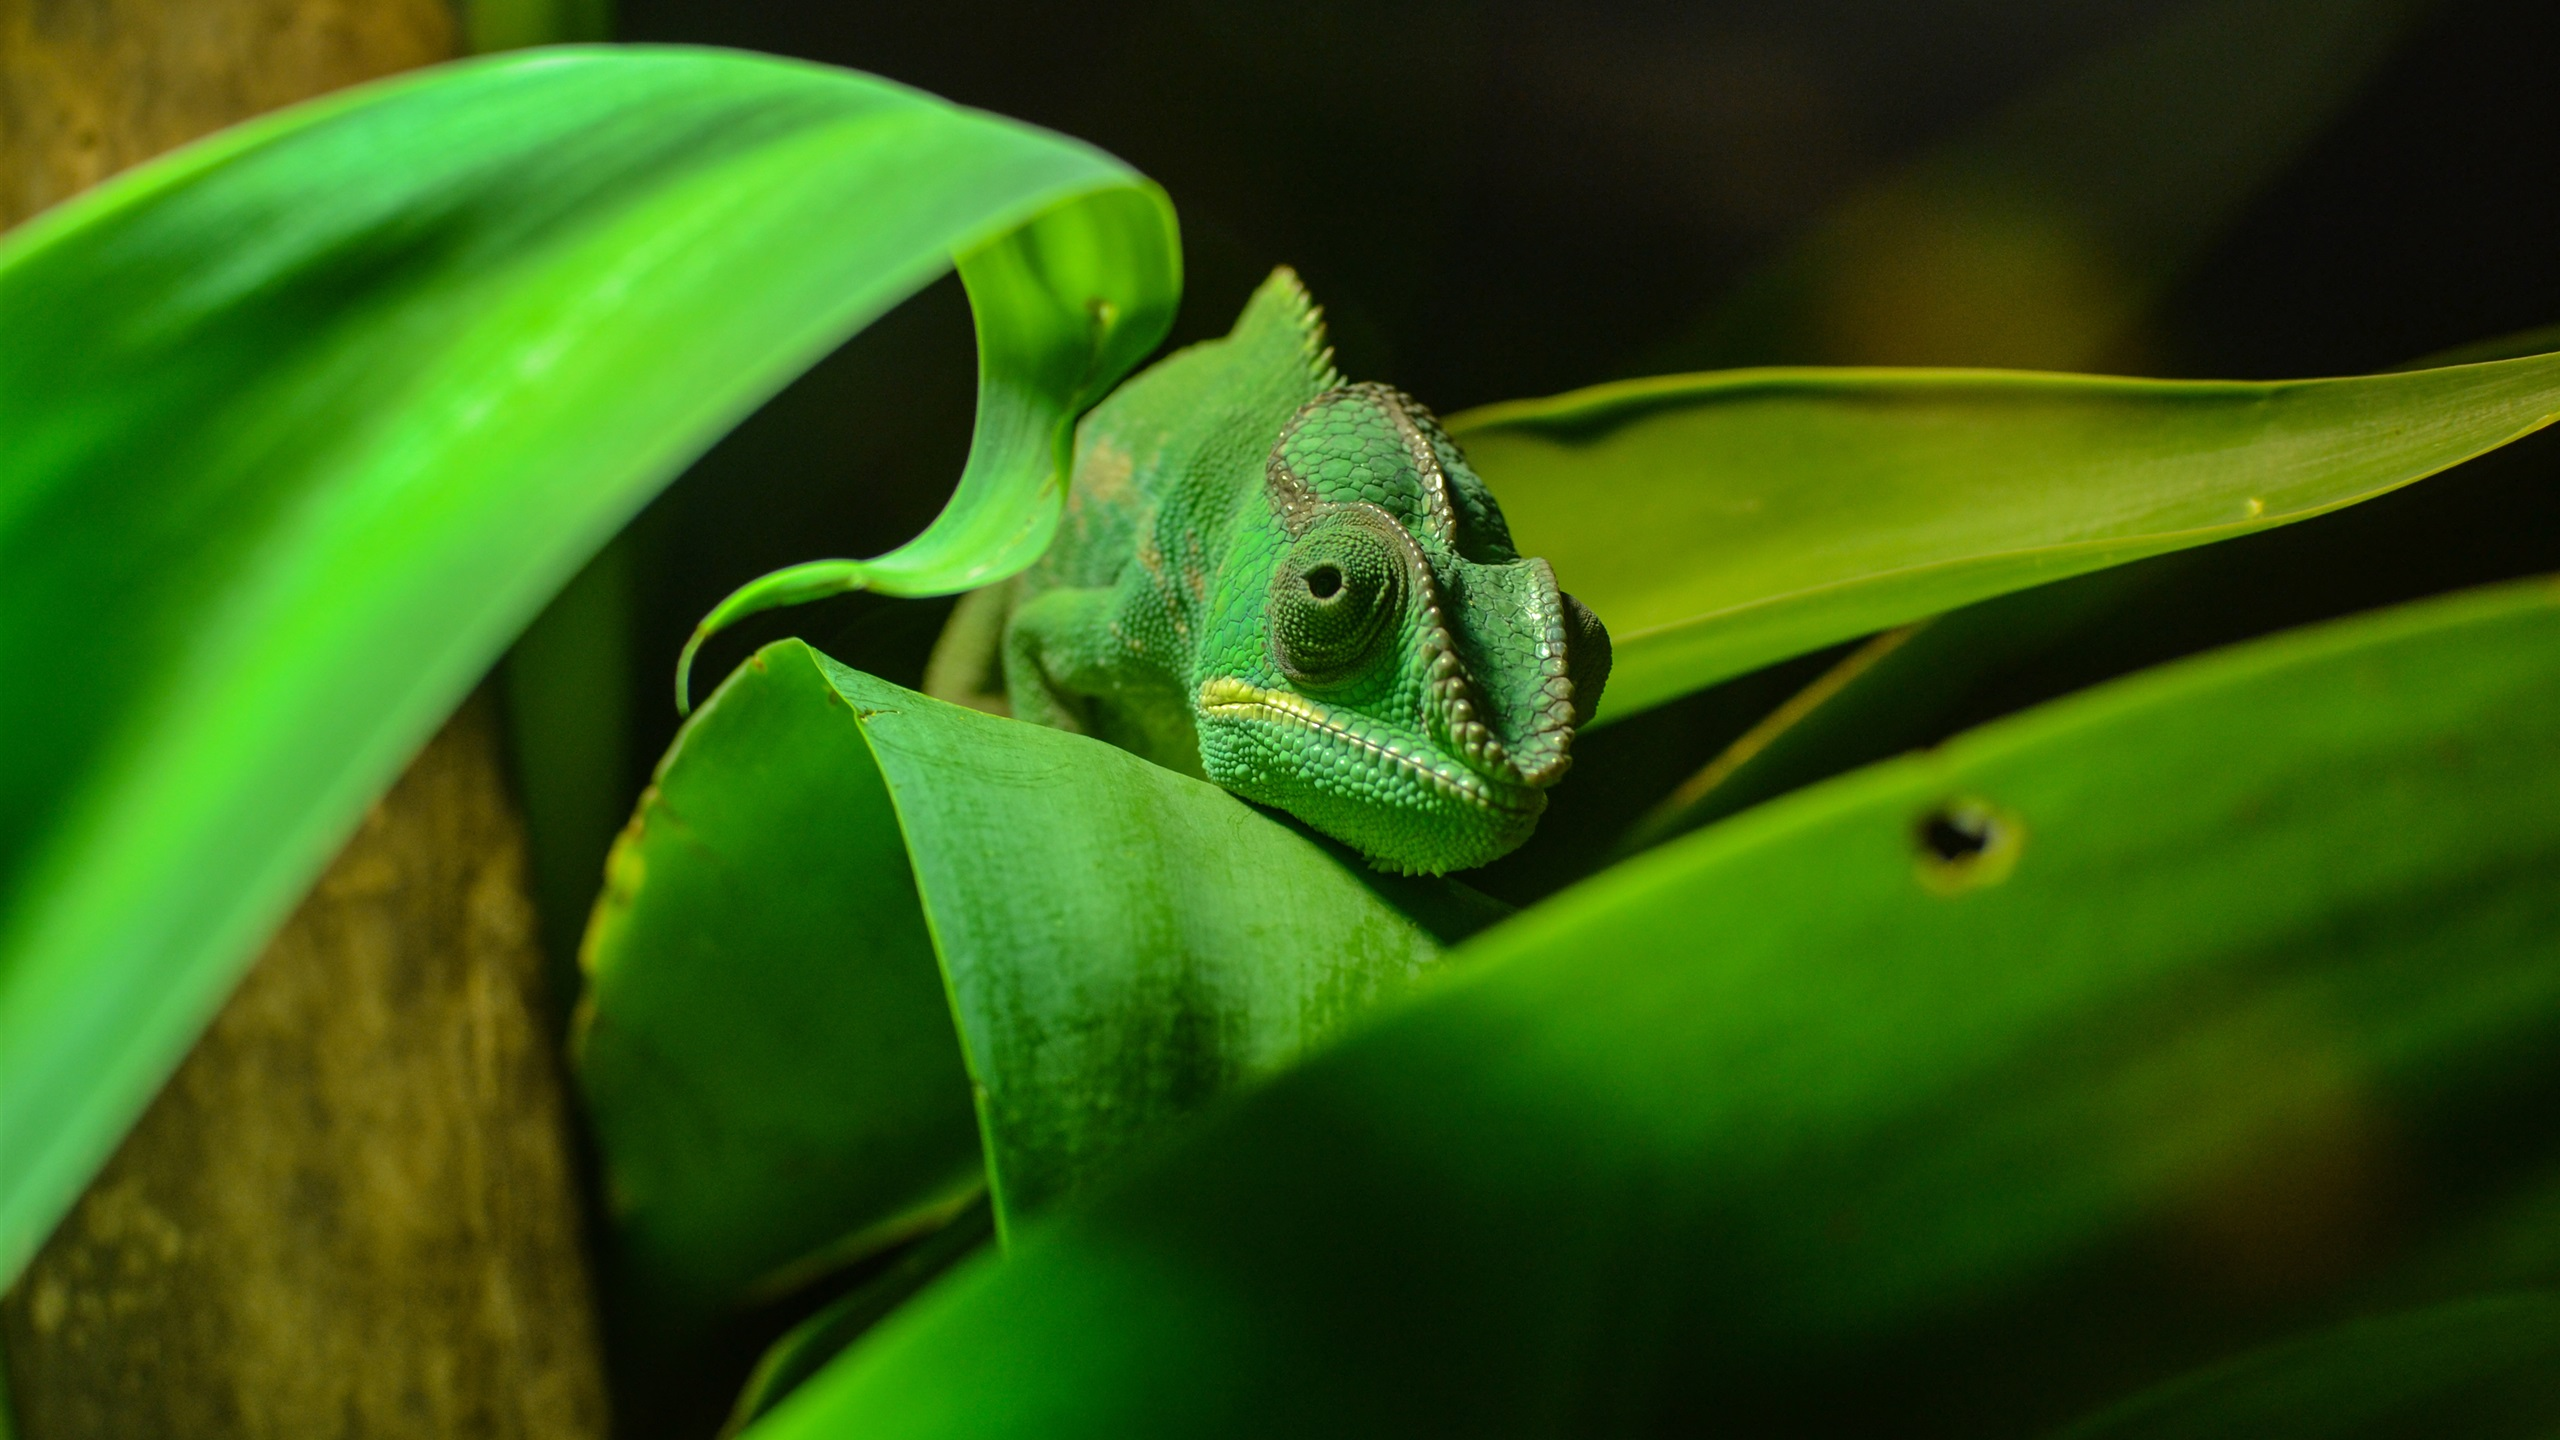 green chameleon widescreen wallpaper - photo #25